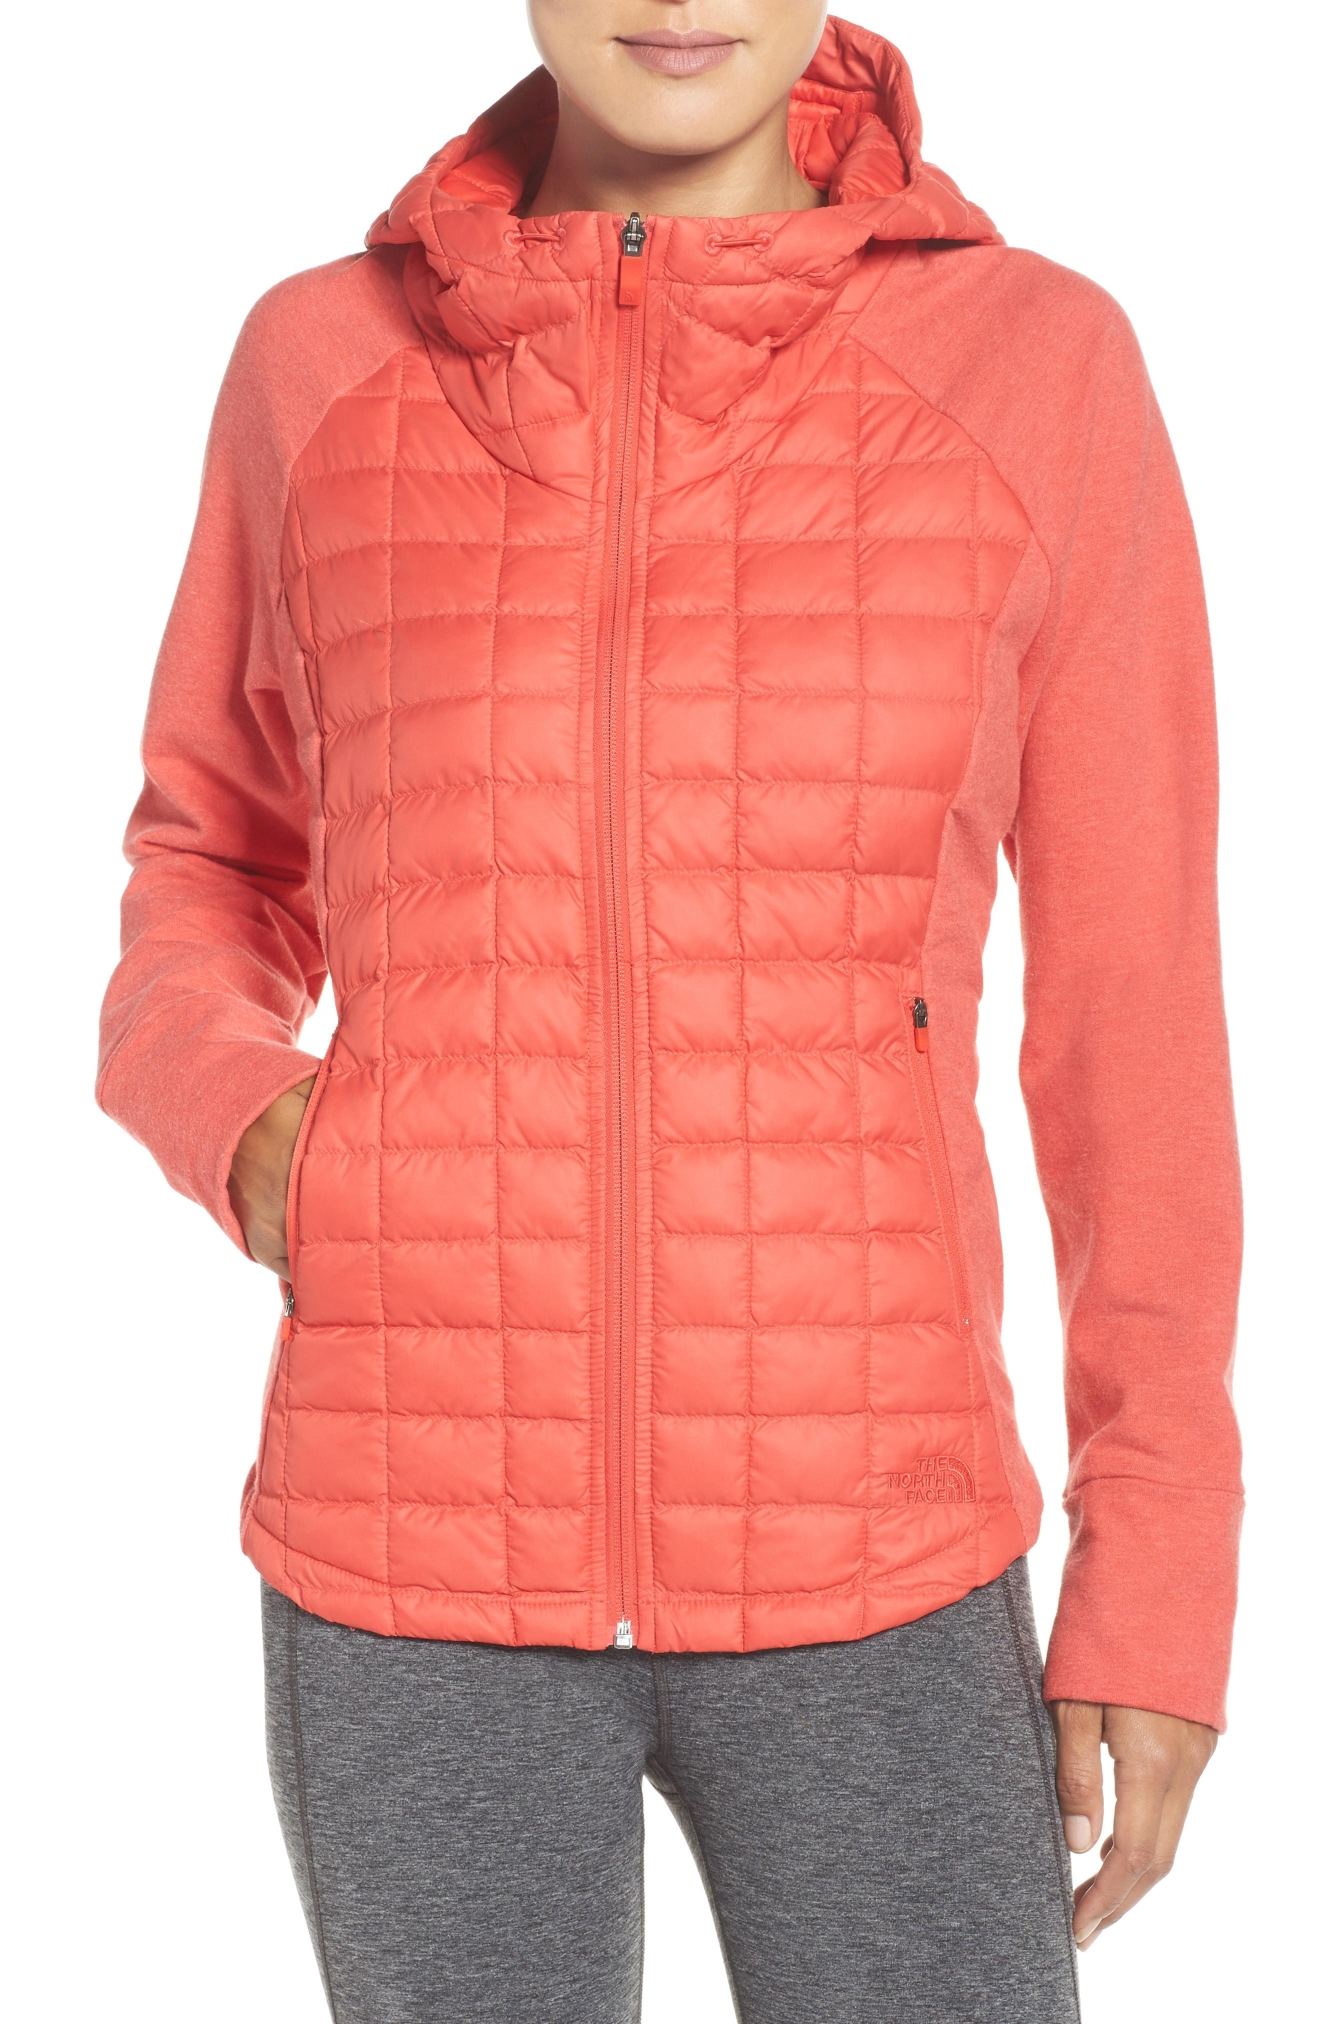 The North Face 'Endeavor' ThermoBall PrimaLoft Quilted Jacket, $160. Available at select Nordstrom stores and nordstrom.com. (Photo: Nordstrom)